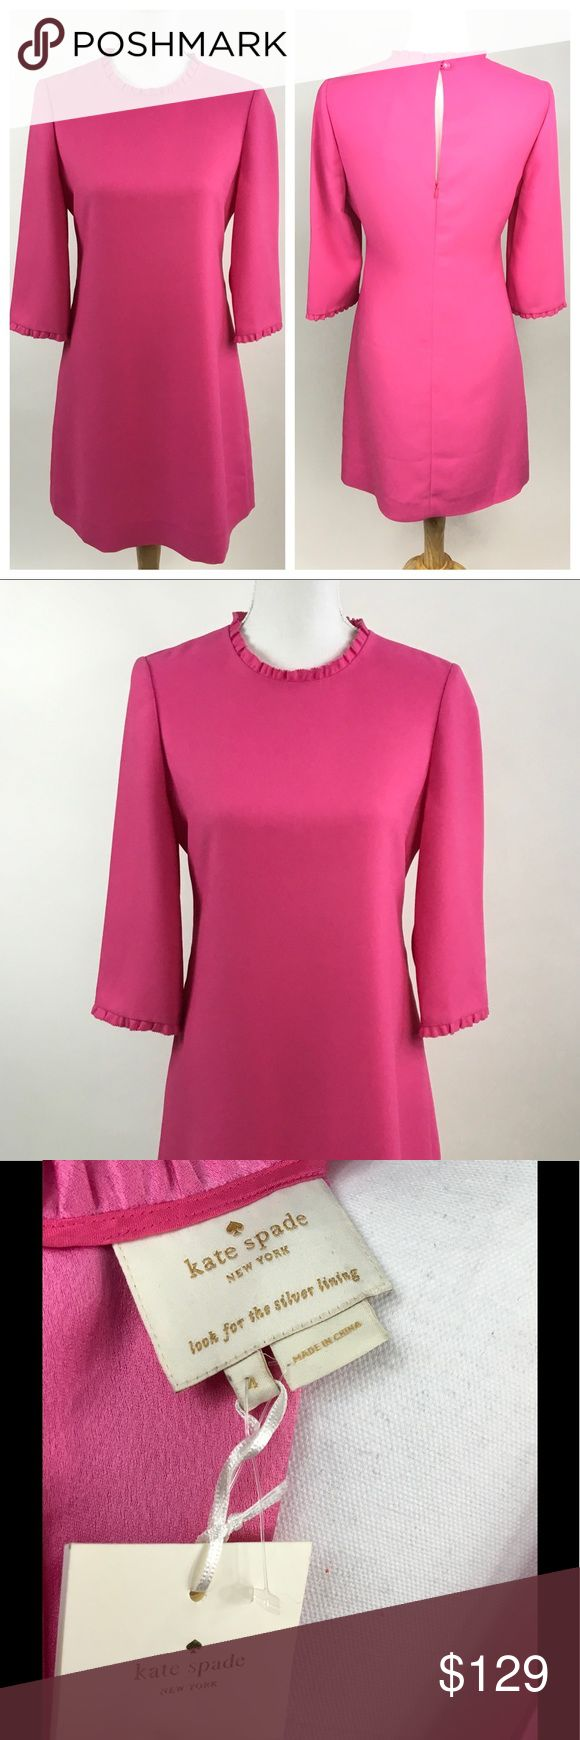 "KATE SPADE NWT PINK SHIFT DRESS SIZE 4 SMALL NWT Kate Spade Dizzy shift dress in bright pink, color is most similar to the stock photos as my photos are dark. This is a perfect versatile day to night dress. Dress it up or down by swapping your shoes and accessories. Bracelet length sleeves and a body skimming shape make this dress super flattering. Mini ruffle at collar and sleeves hem. Length 35.5"", shoulders 13 7/8"", chest 18"", sleeve 17 3/8"". Comes with an extra pink domed button. Hidden…"